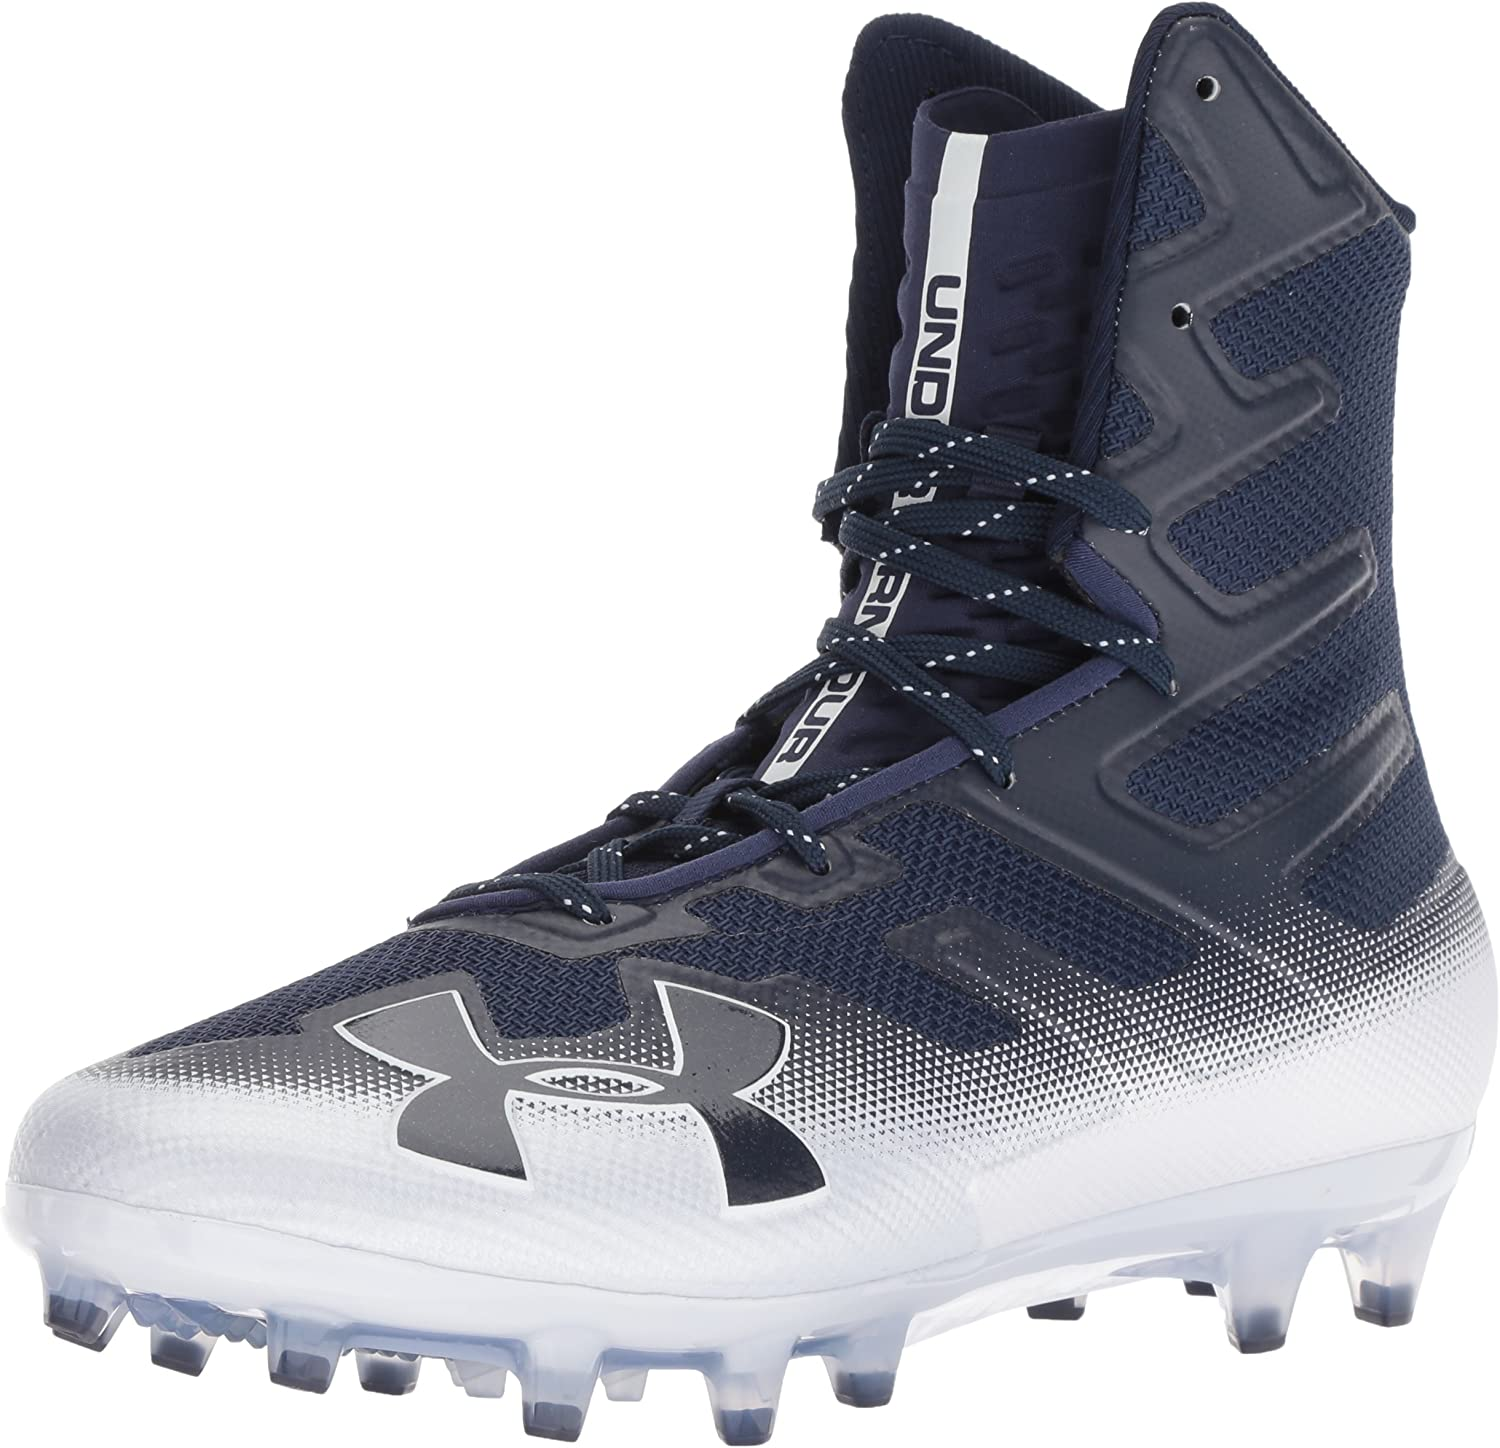 Under Armour Men's Highlight MC Football Shoe, Midnight Navy (402)/白い, 9.5